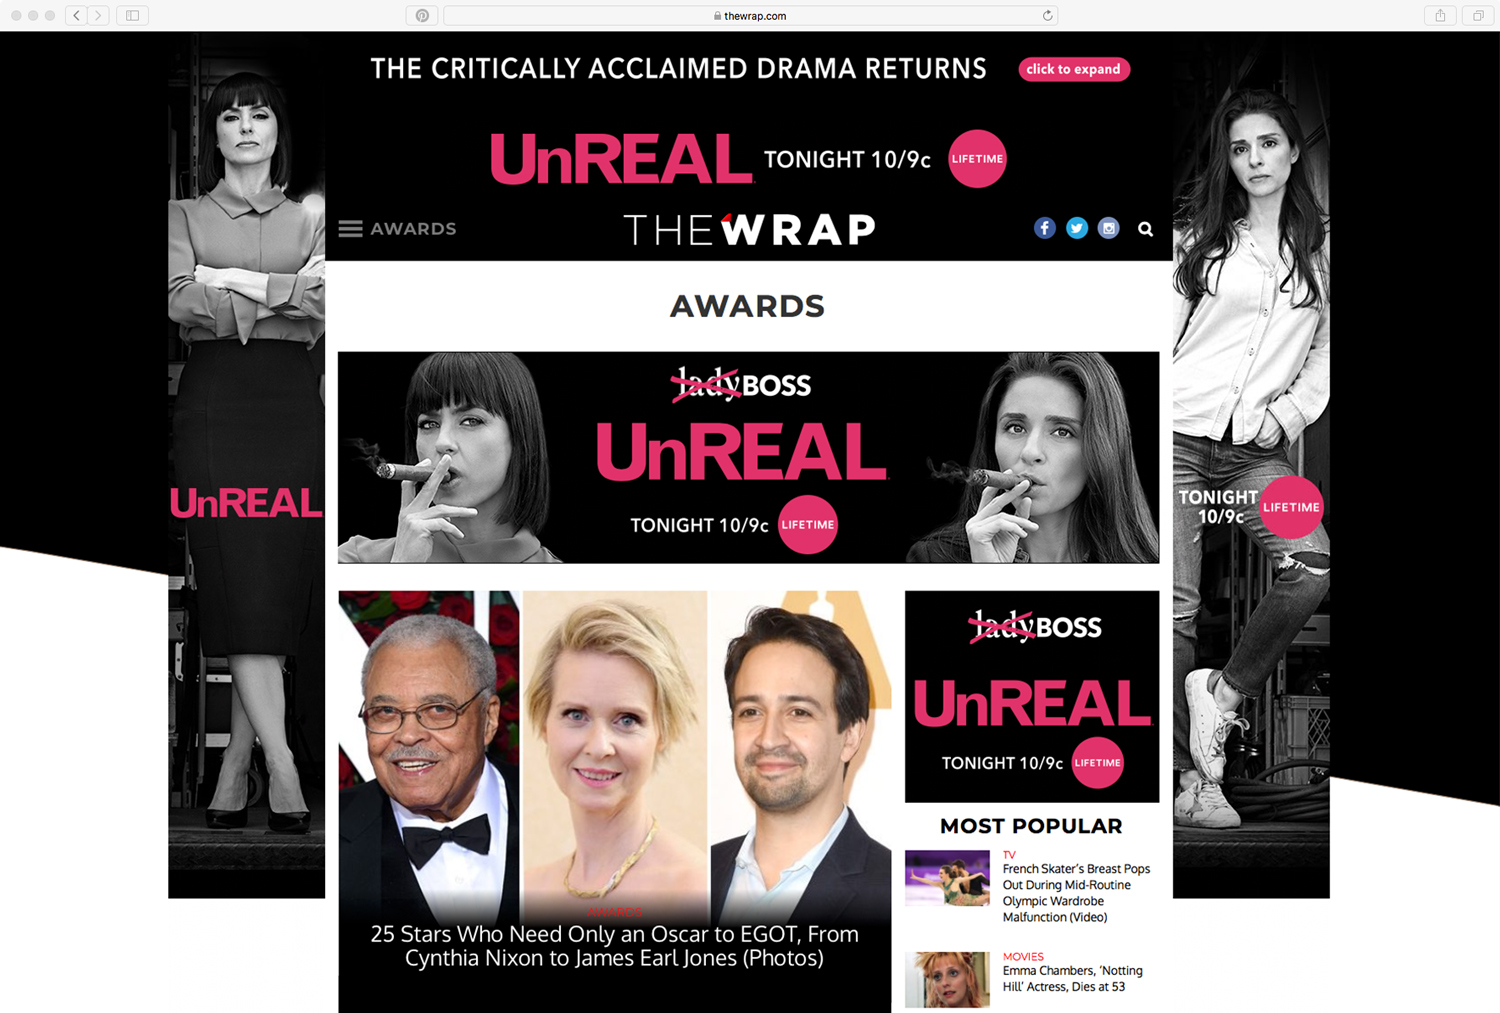 The Wrap - Takeover